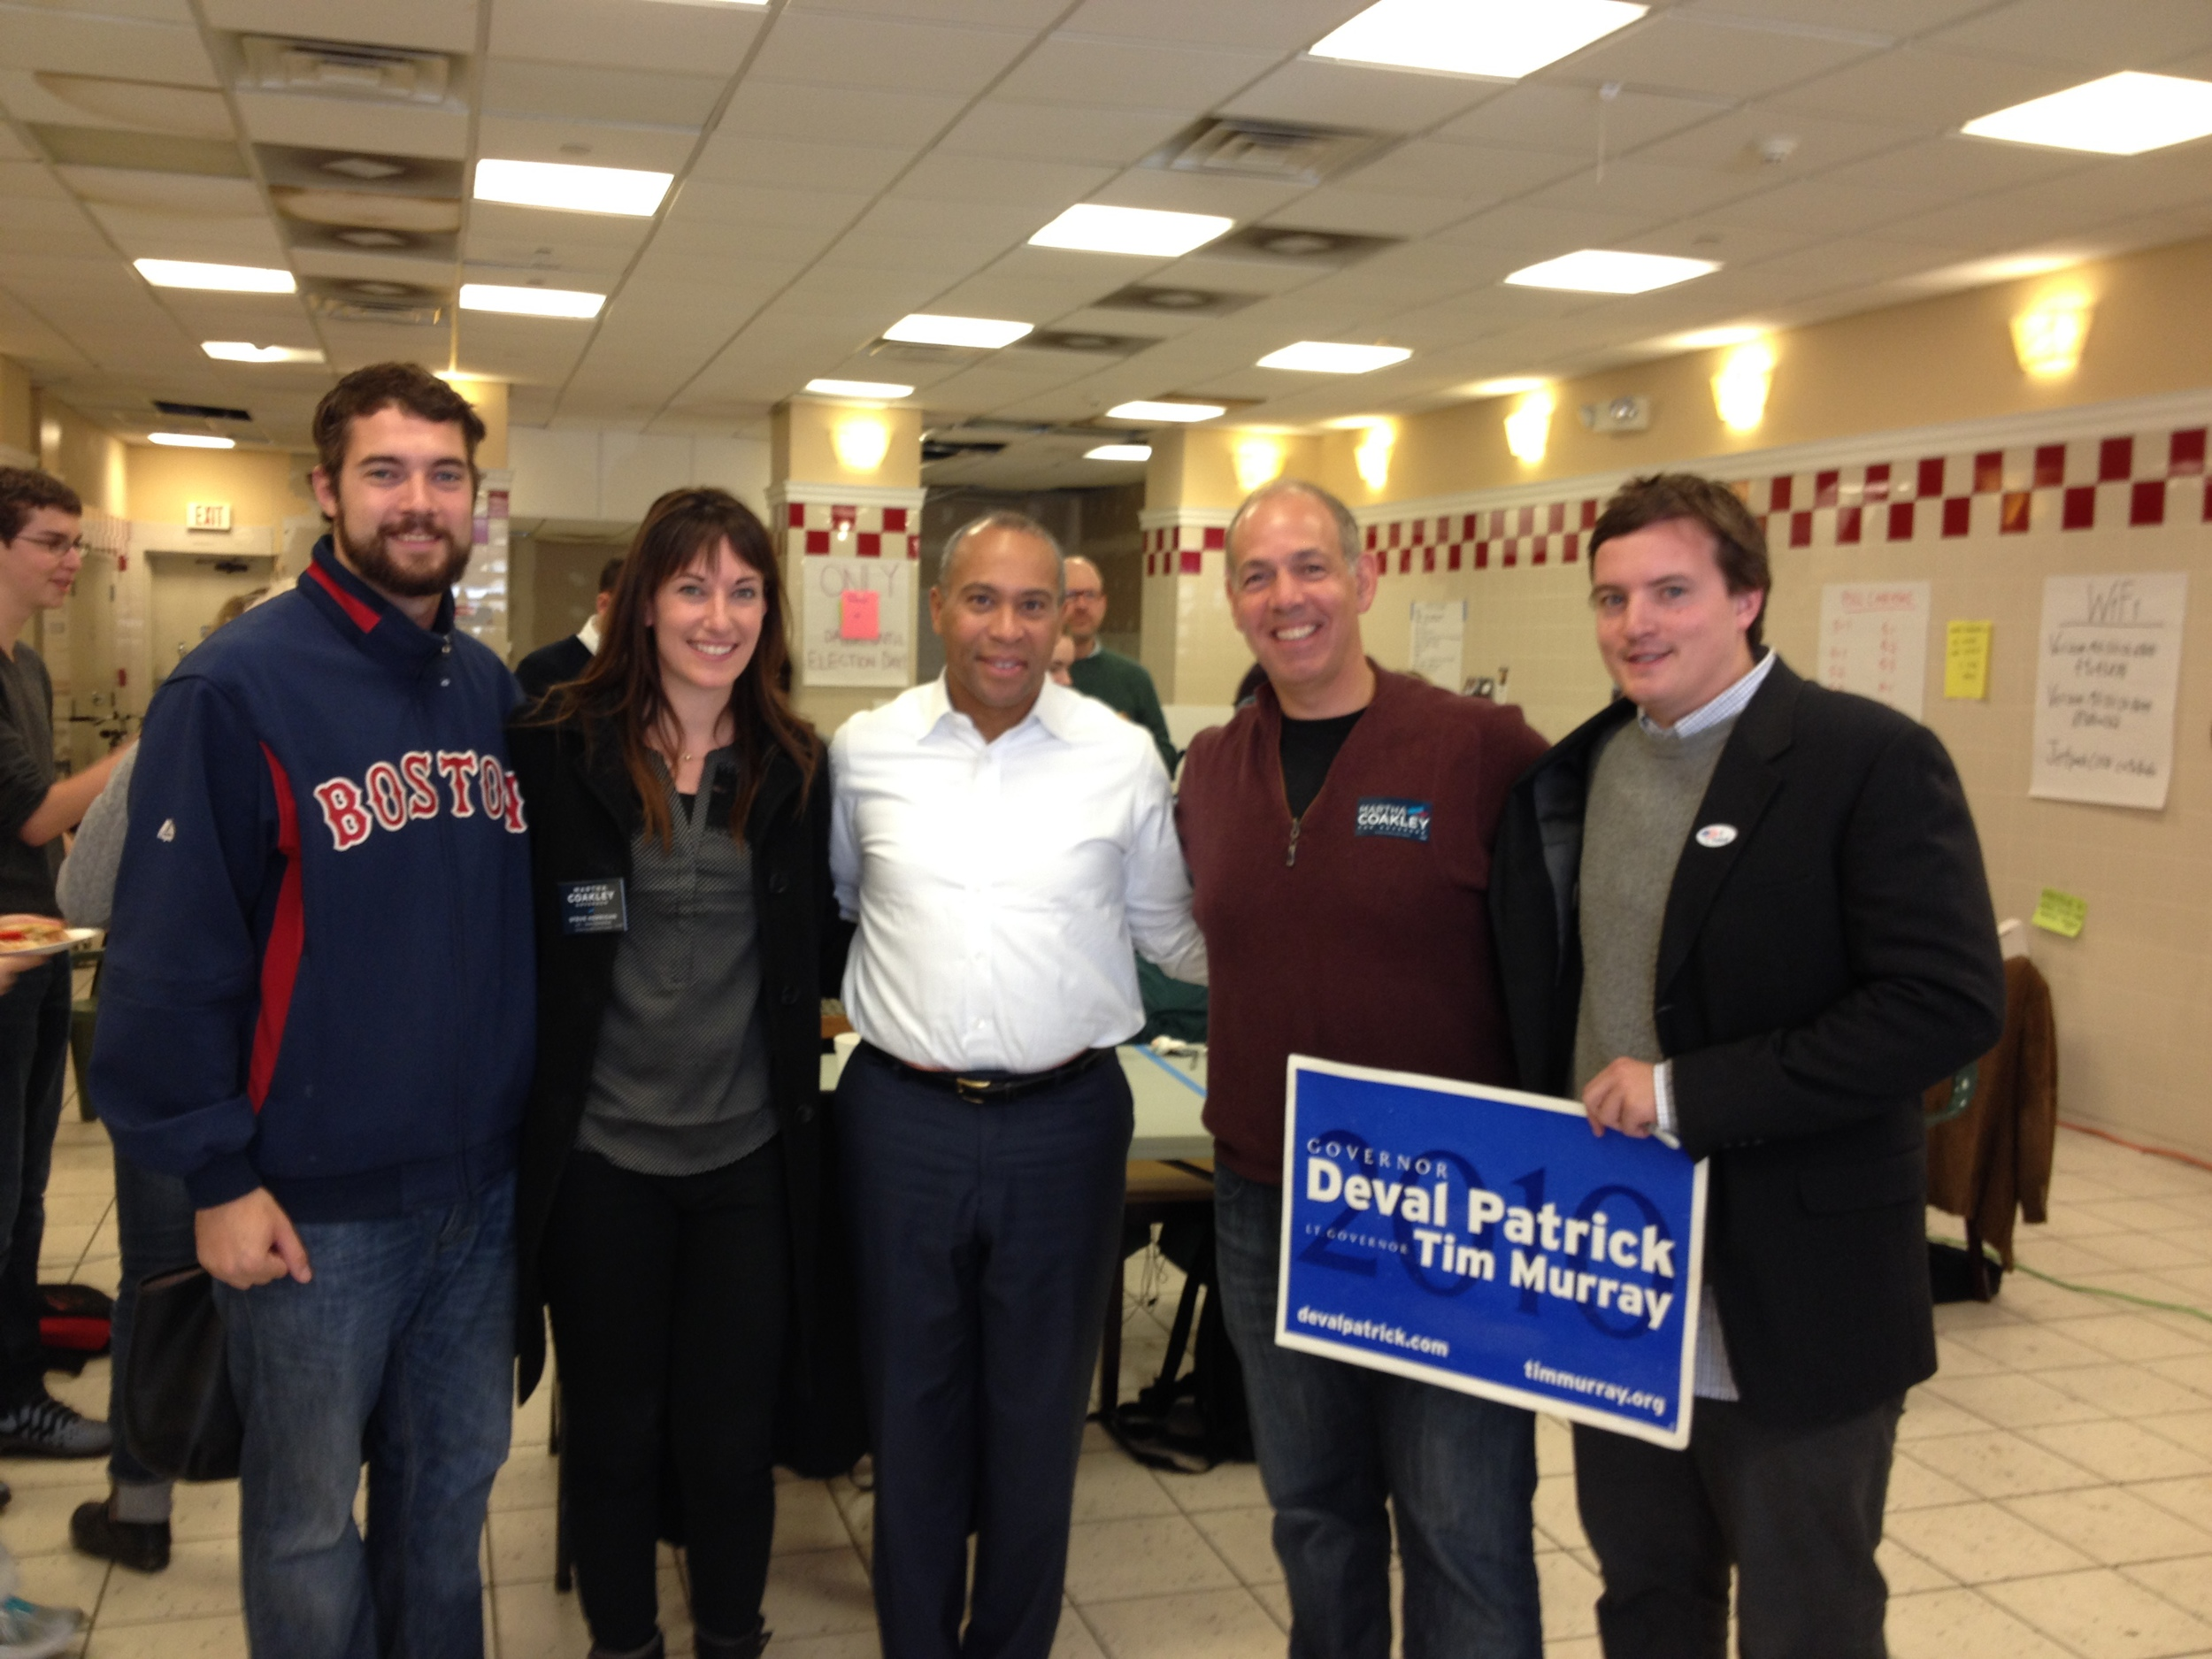 Charles Group Consulting interns with former Governor Deval Patrick